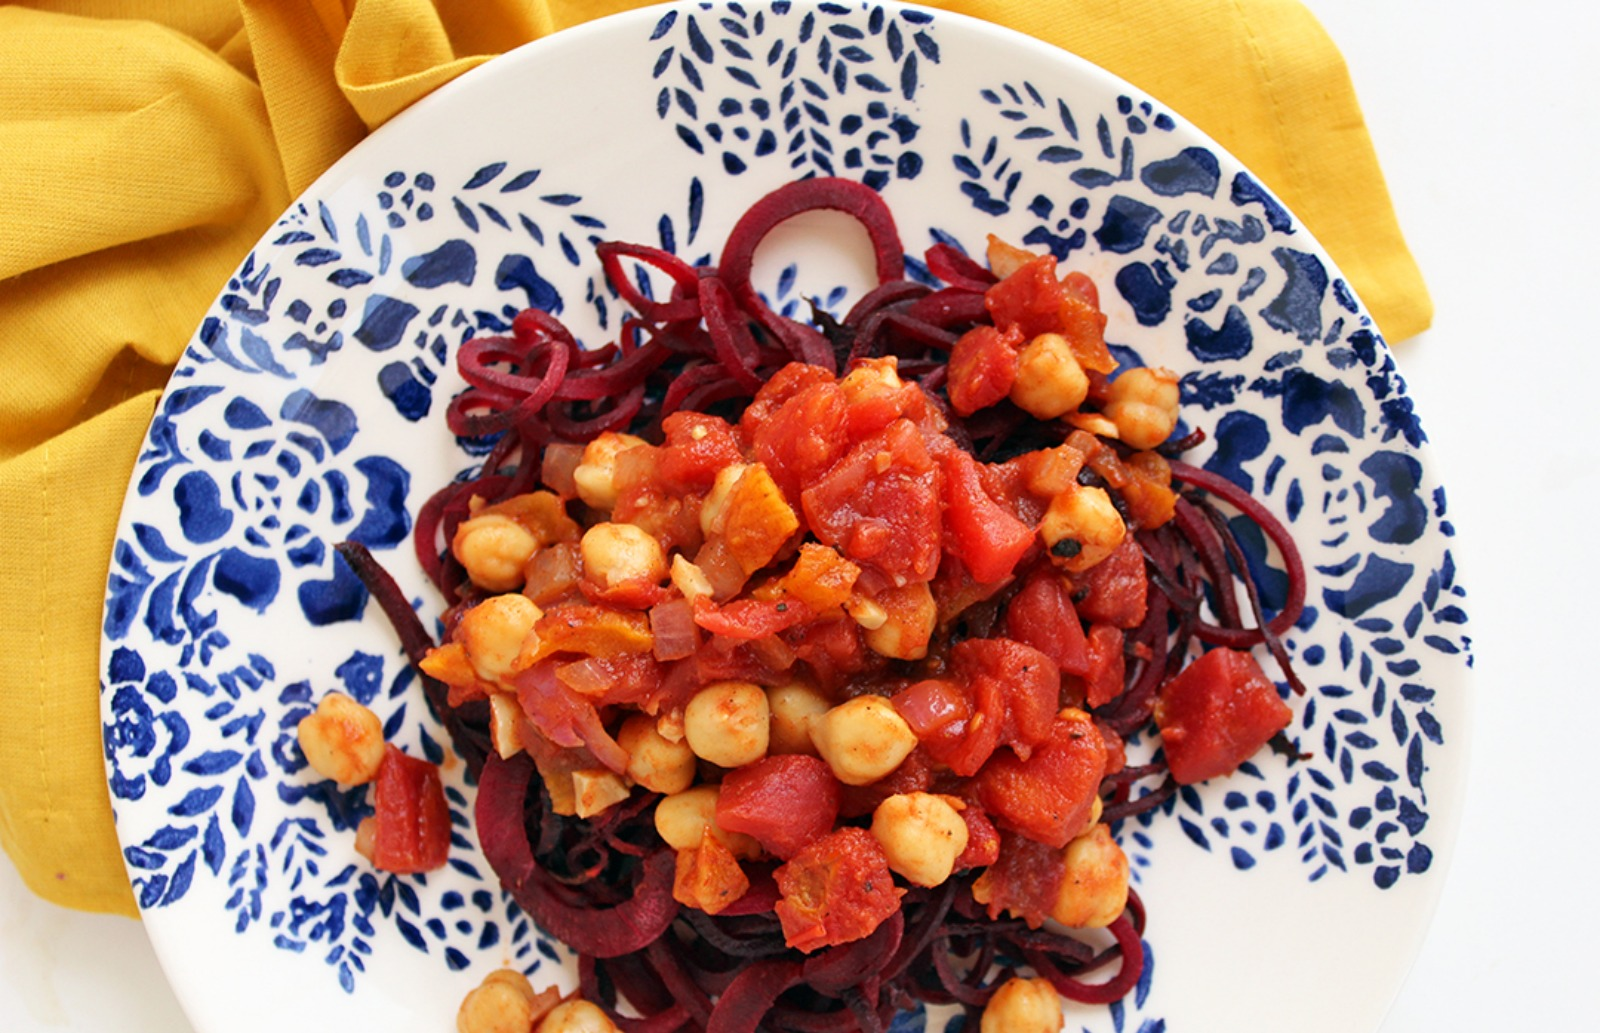 Spicy Moroccan Chickpeas with Beet Noodles [Vegan]